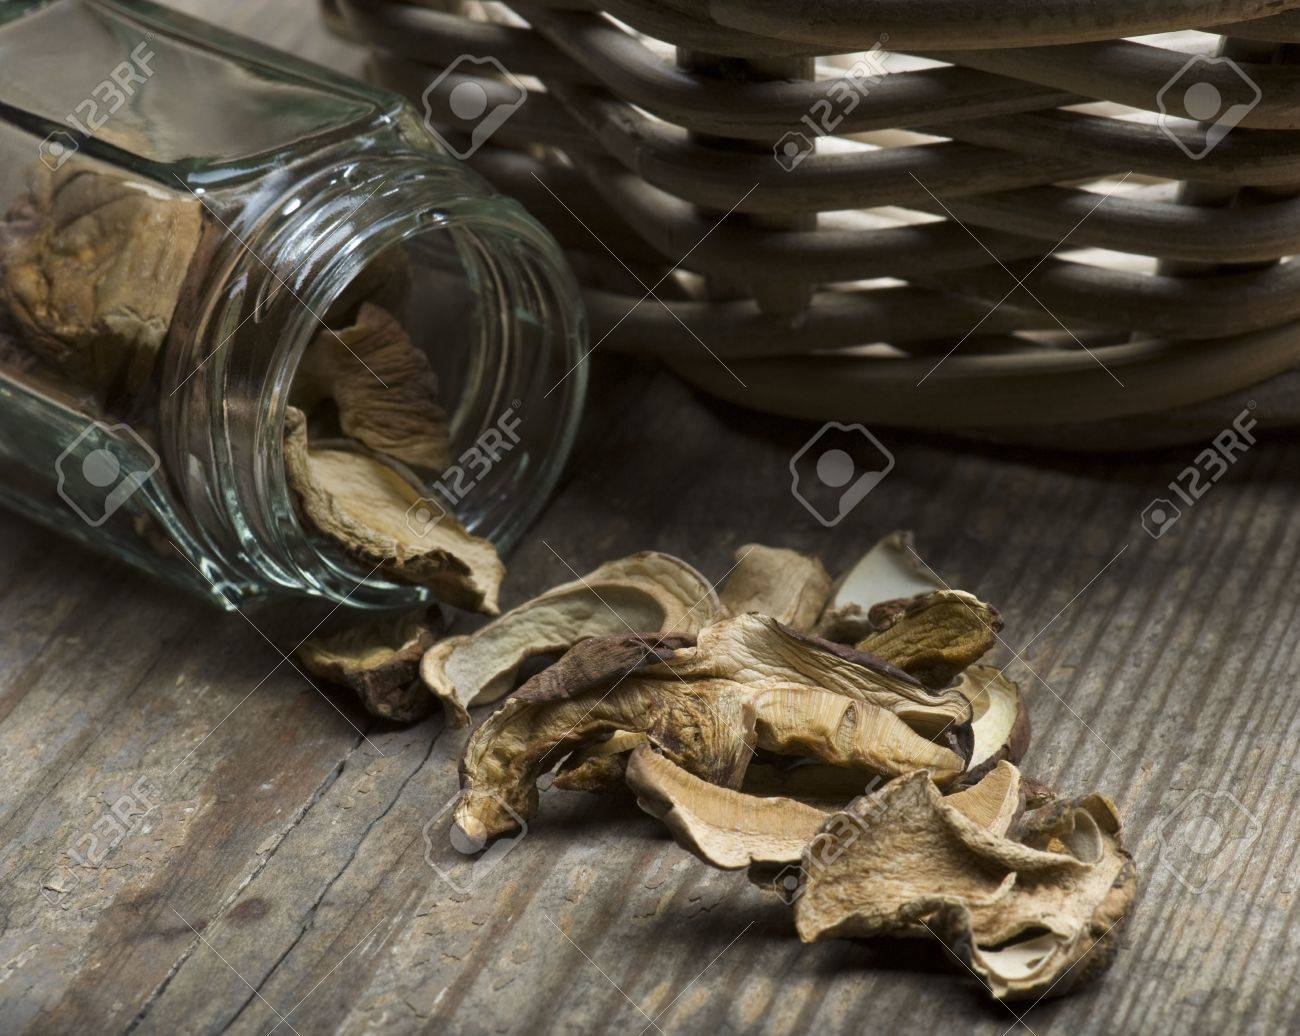 Dried Porcini Mushrooms Spilling Out Of A Jar Onto A Rustic Table, With A basket In The Background - 6951576